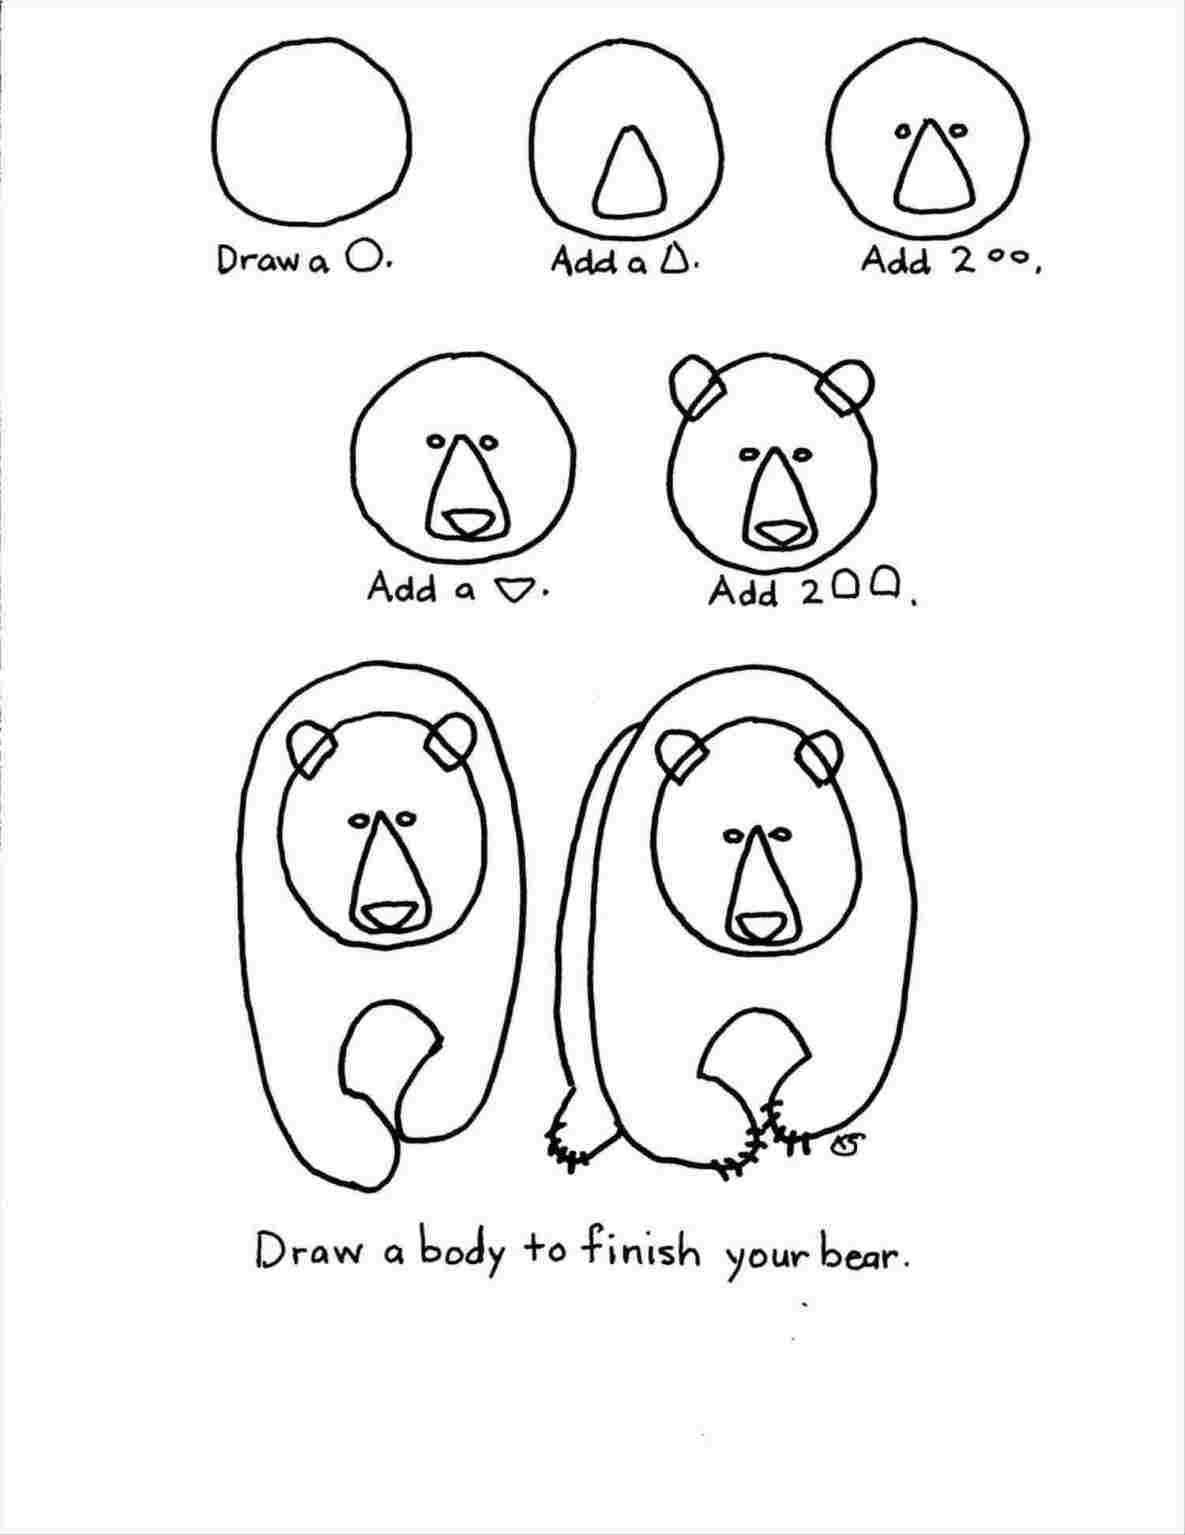 grizzly bear drawing step by step learn how to draw an angry grizzly bear bears step by step drawing grizzly by step bear